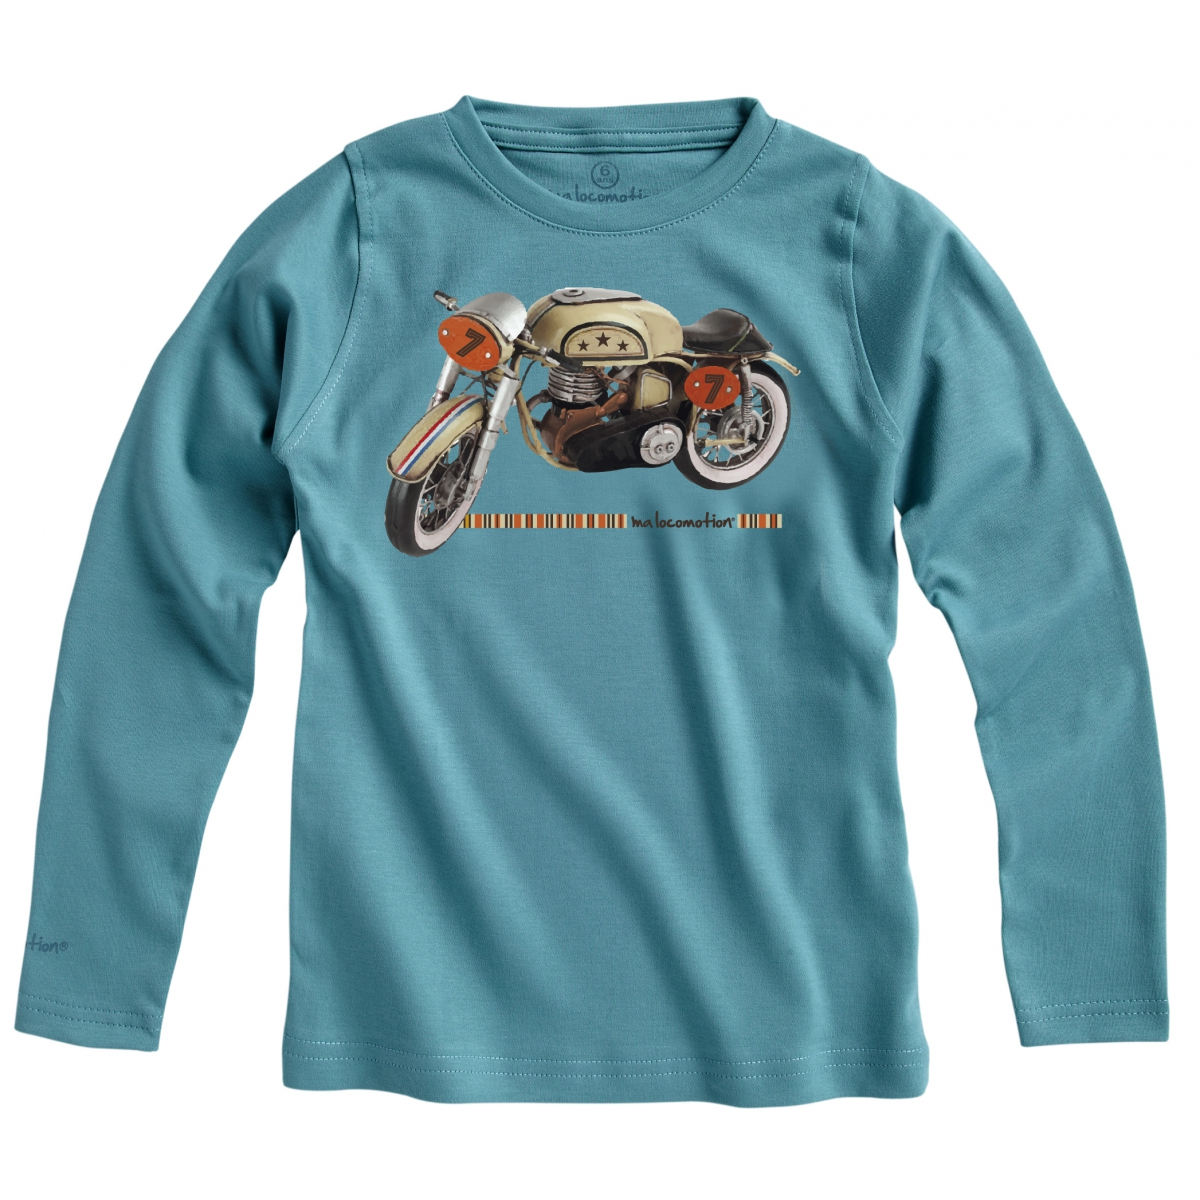 Vintage mototrcycle t-shirt - bleu green